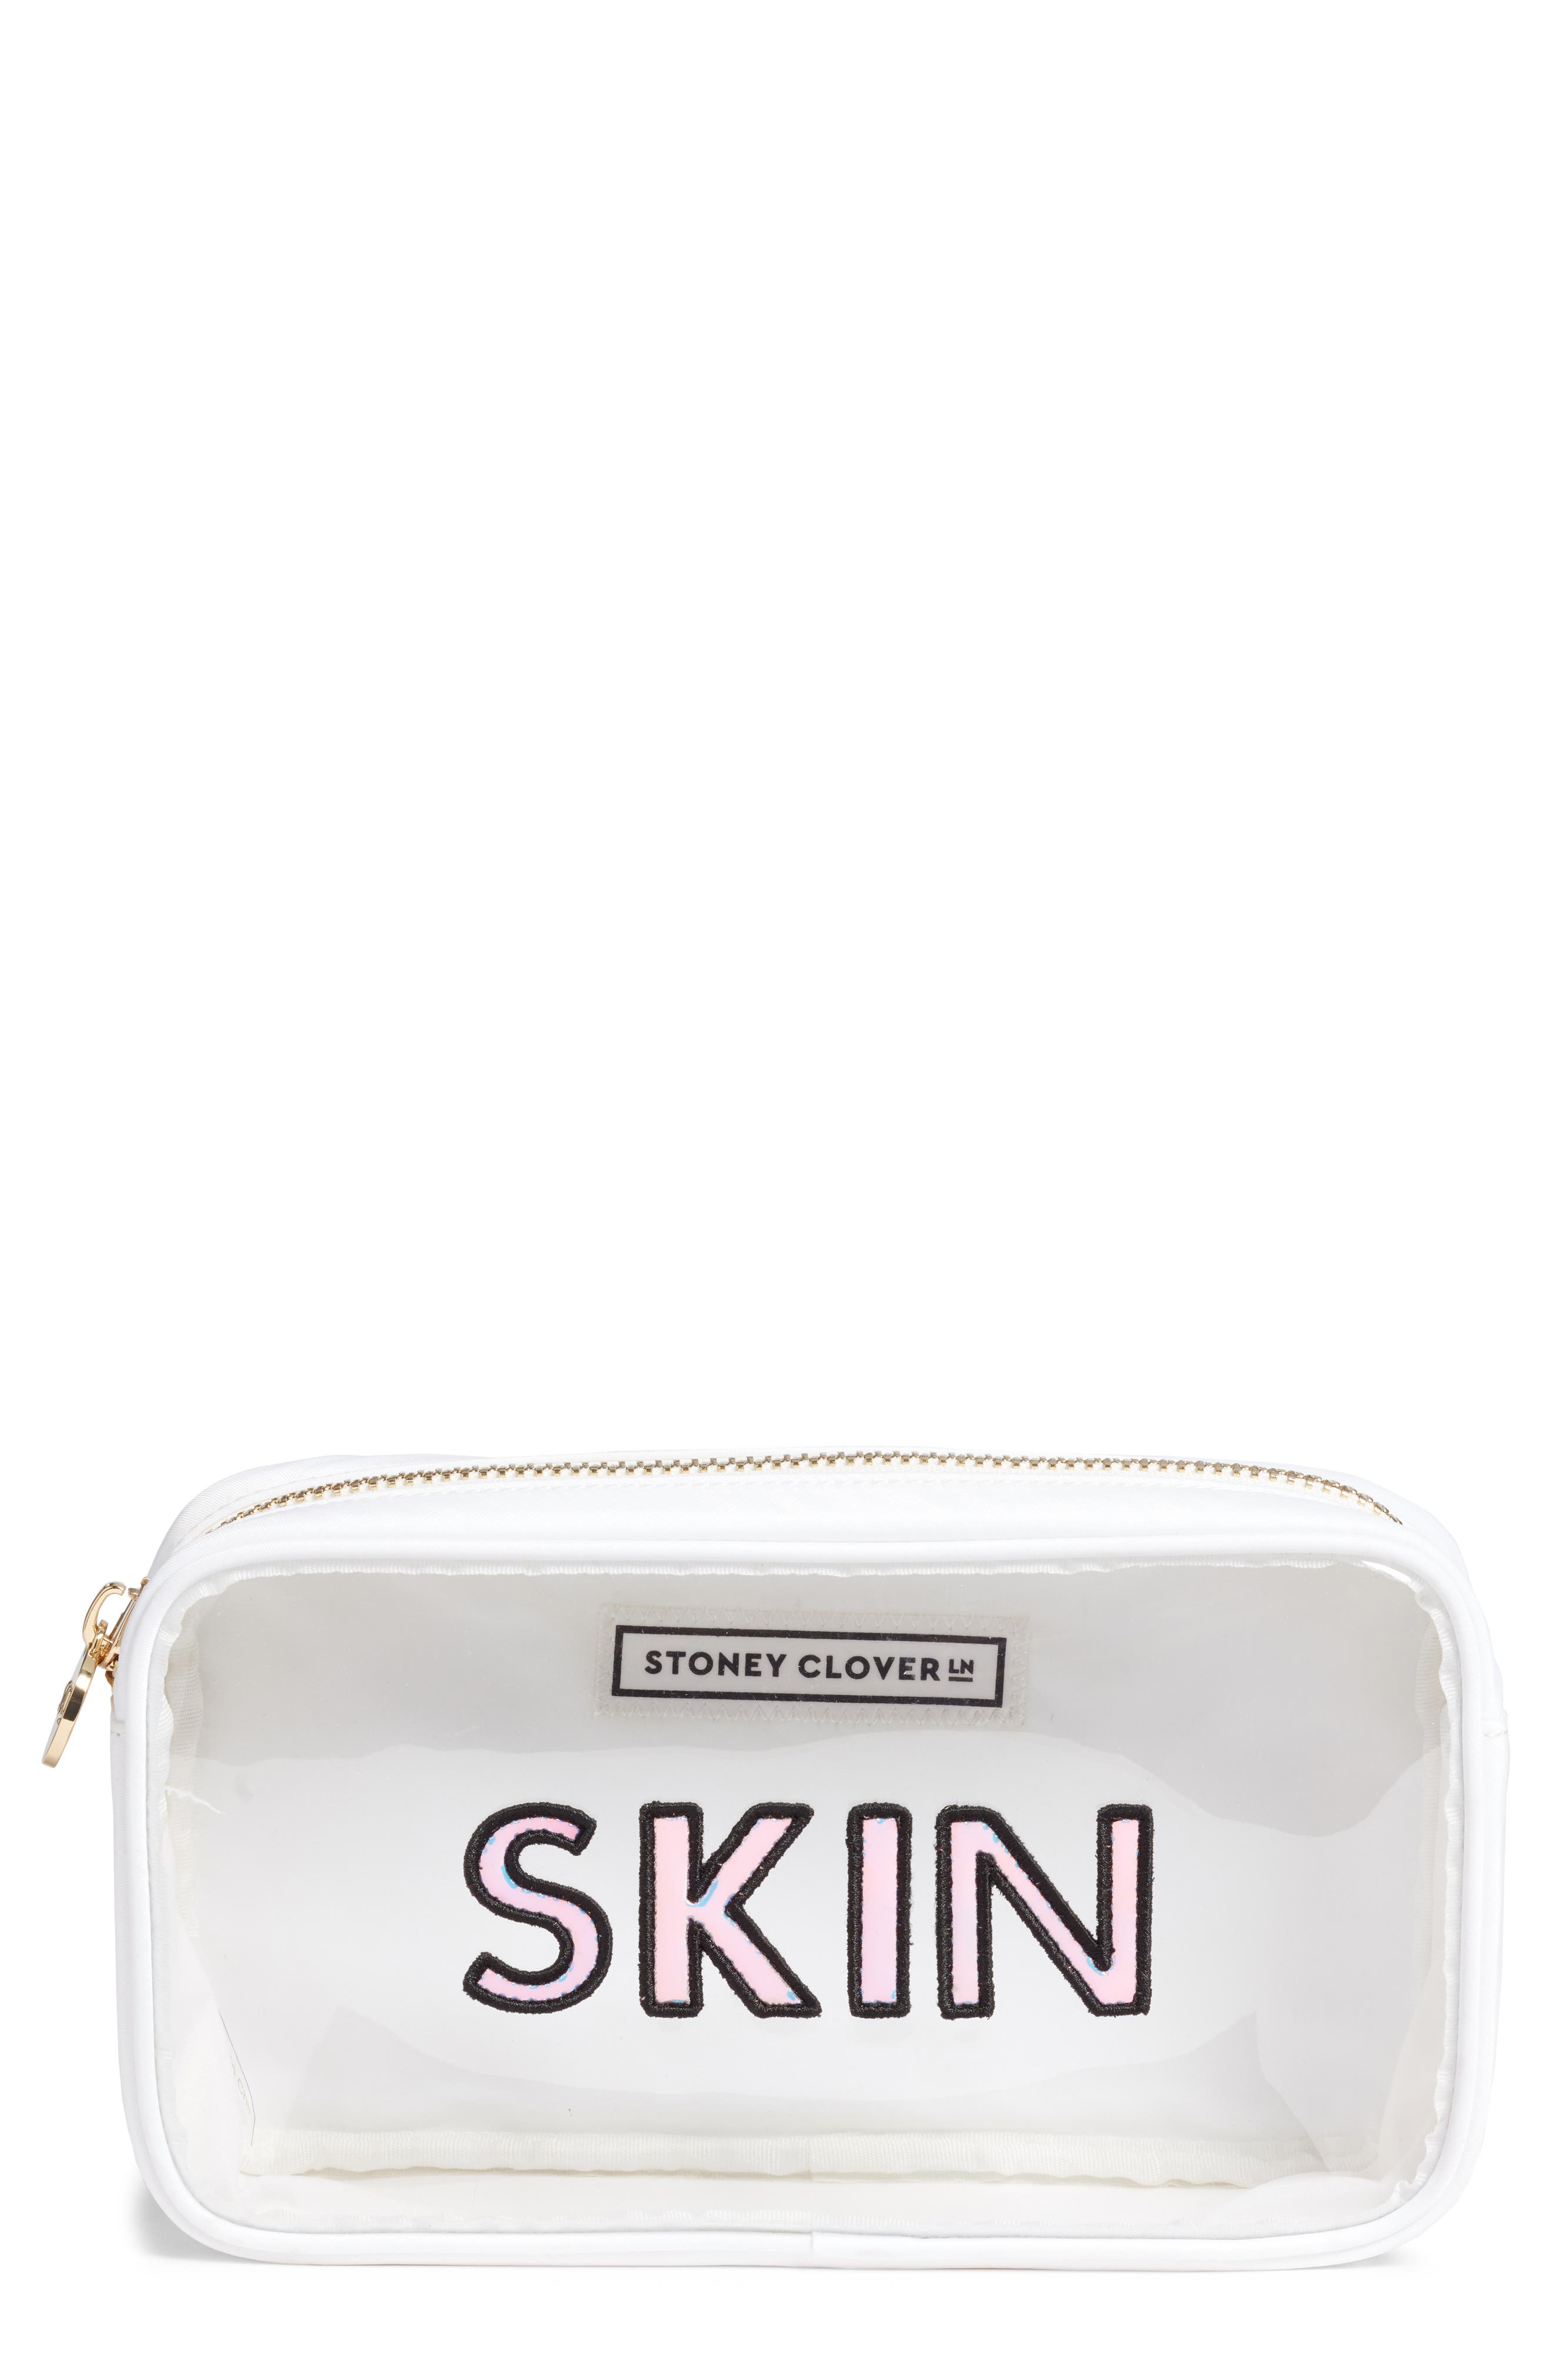 STONEY CLOVER LANE Small Pouch in White